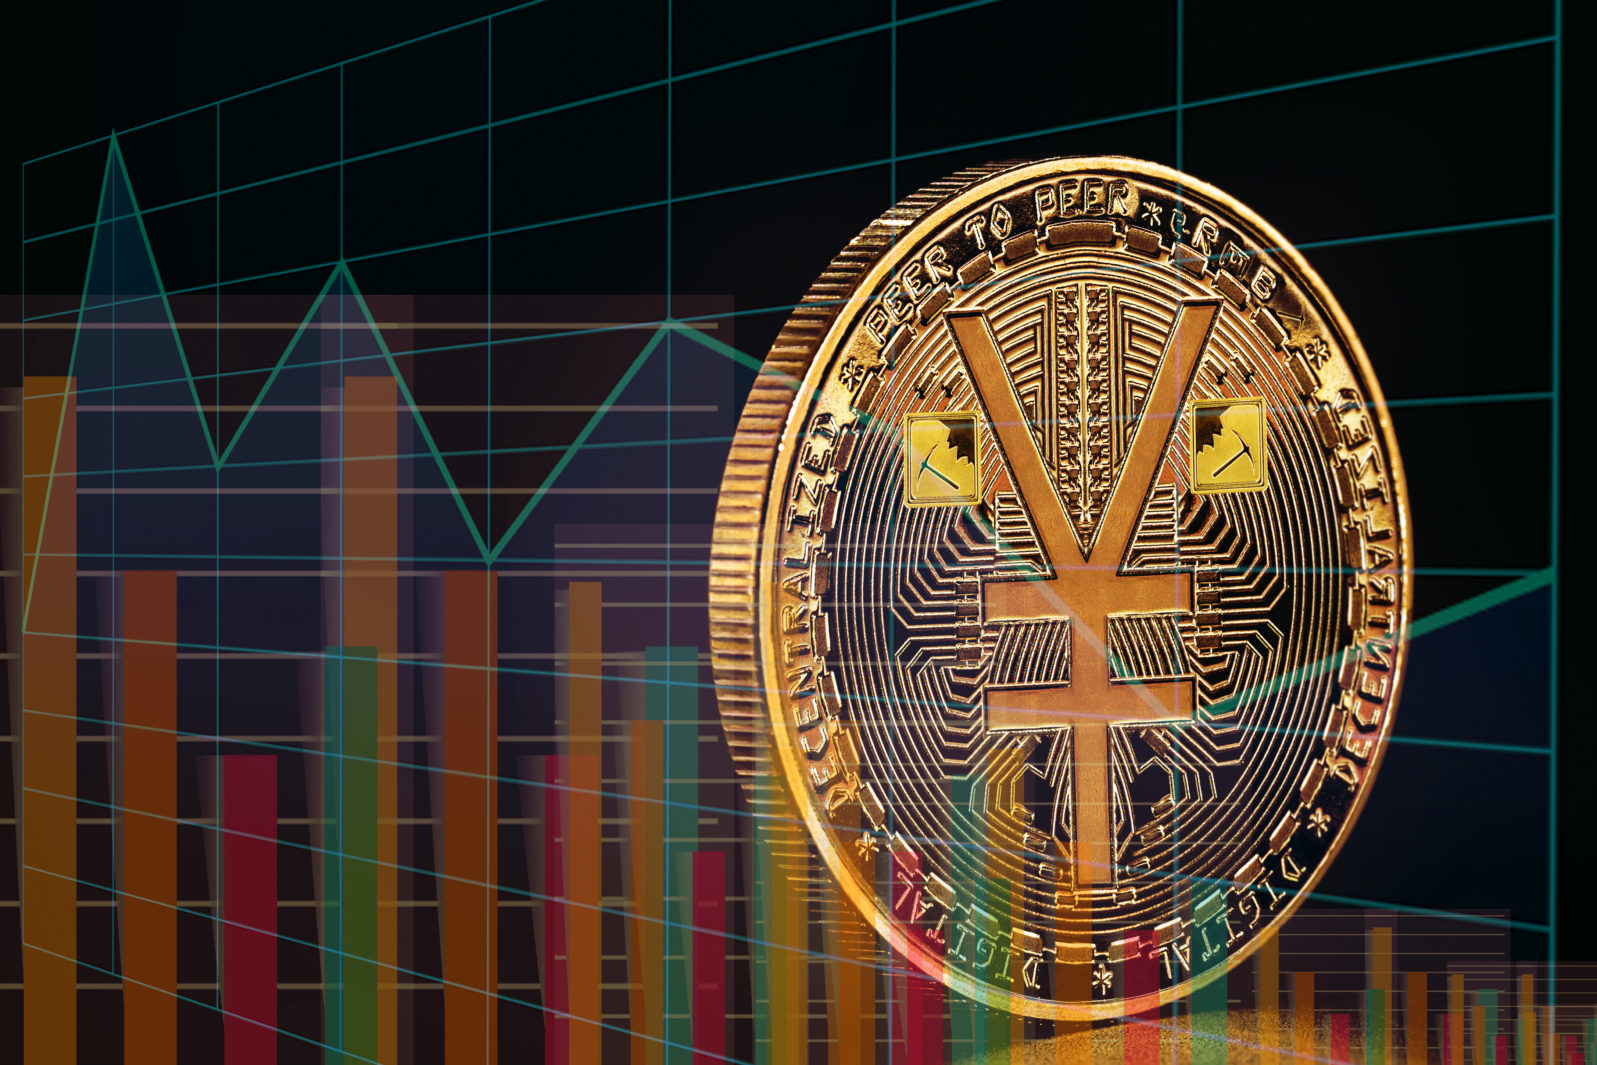 conceptual image Chinese stock exchange with digital currency, devaluation of bitcoin or growth of Chinese e-rmb